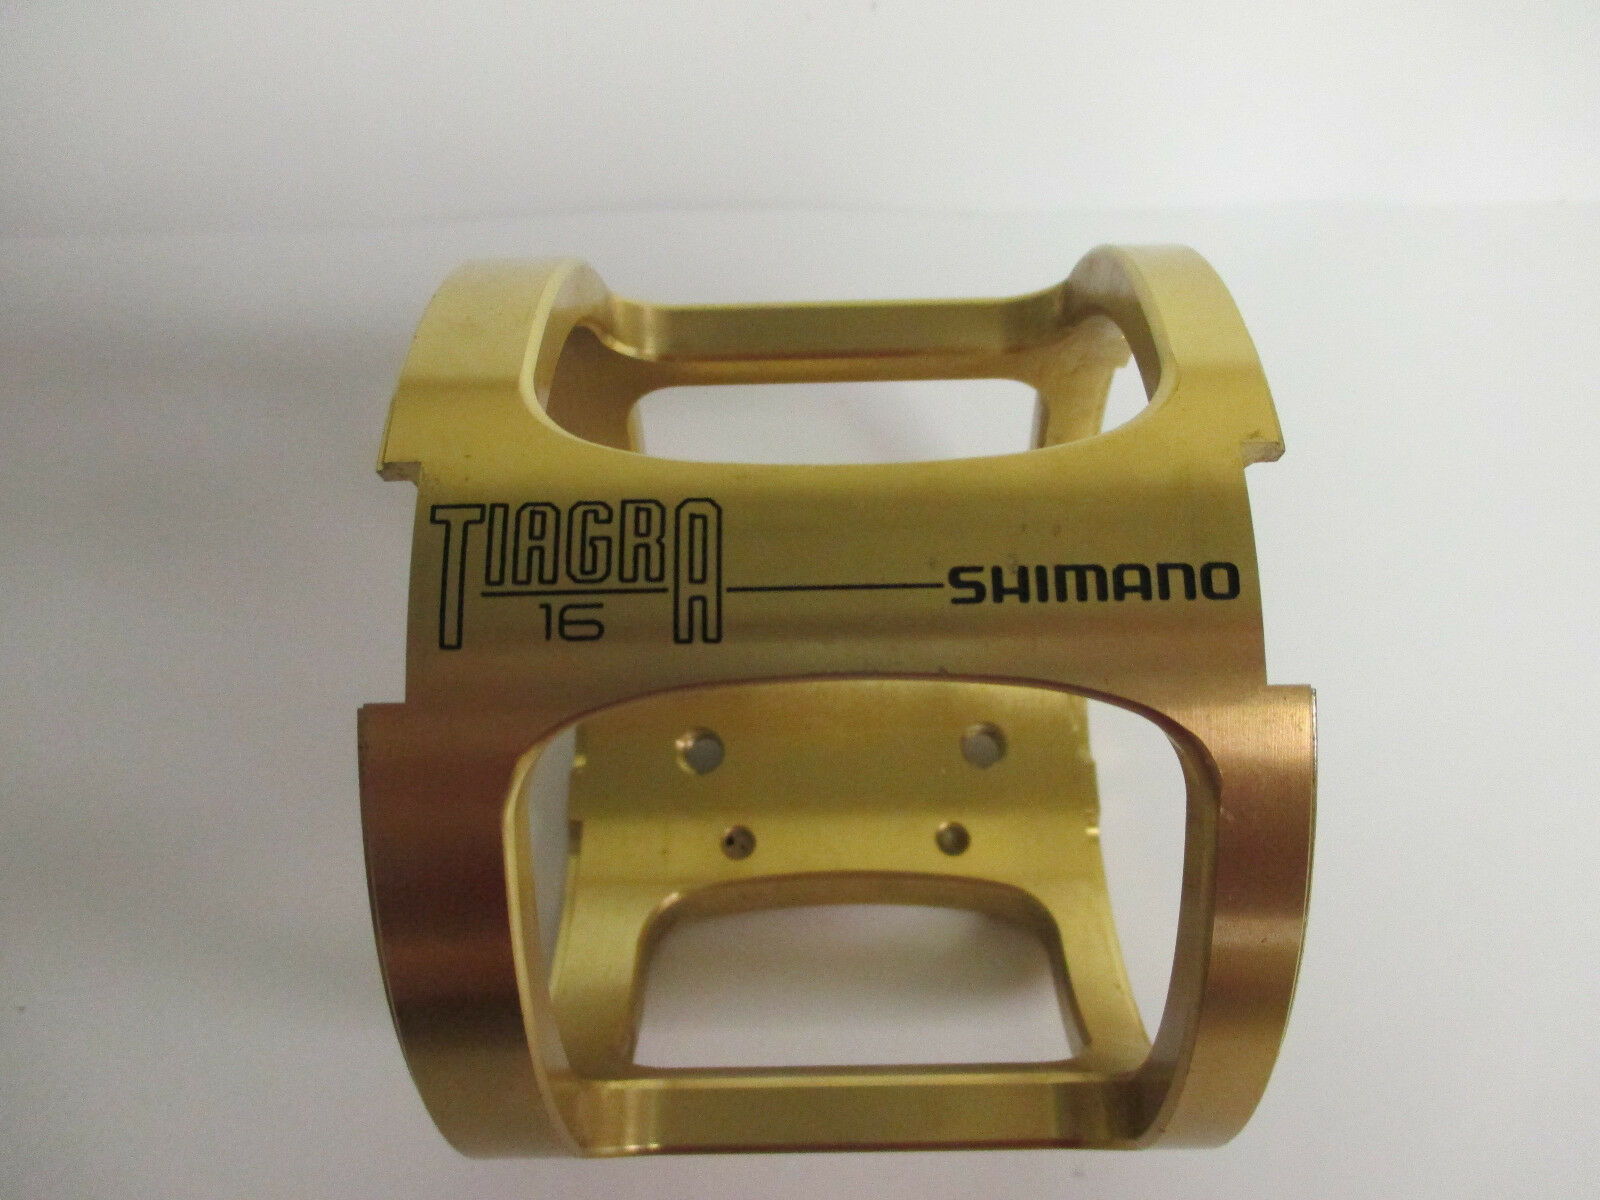 USED SHIMANO BIG GAME REEL PART PART REEL - Tiagra 16 - Frame -  H 4b9bdf